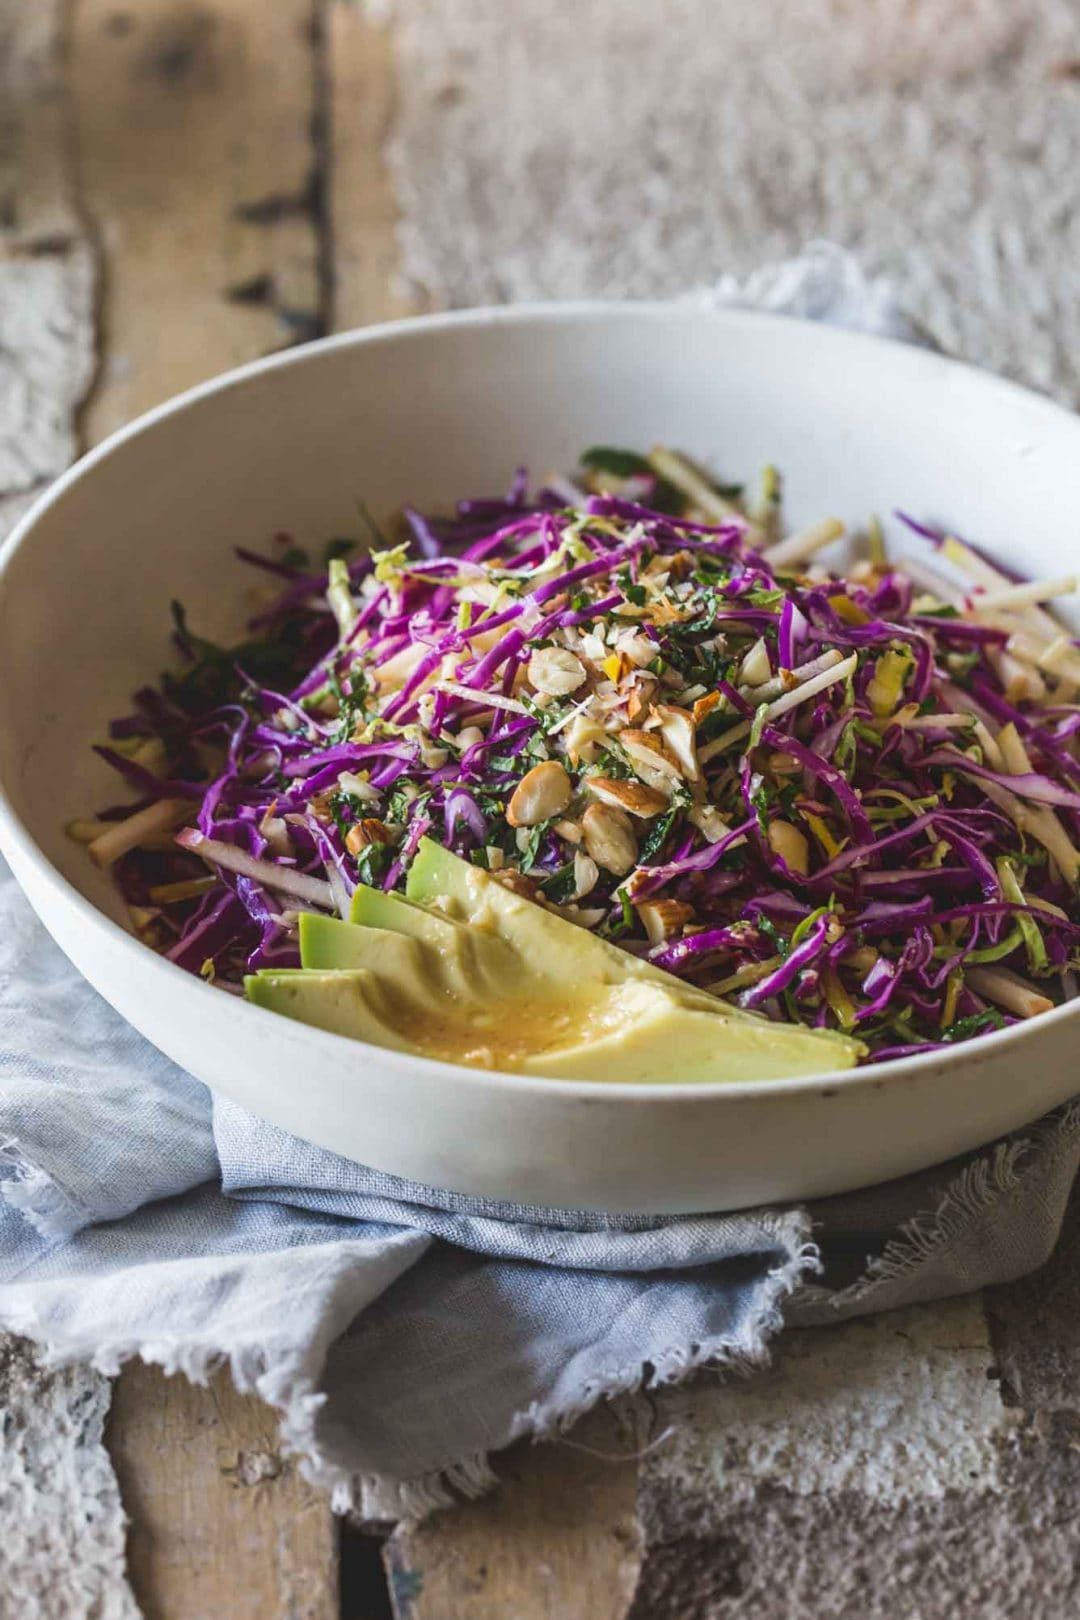 40 delicious & healthy vegan salad recipes picture of detox slaw salad for recipe roundup